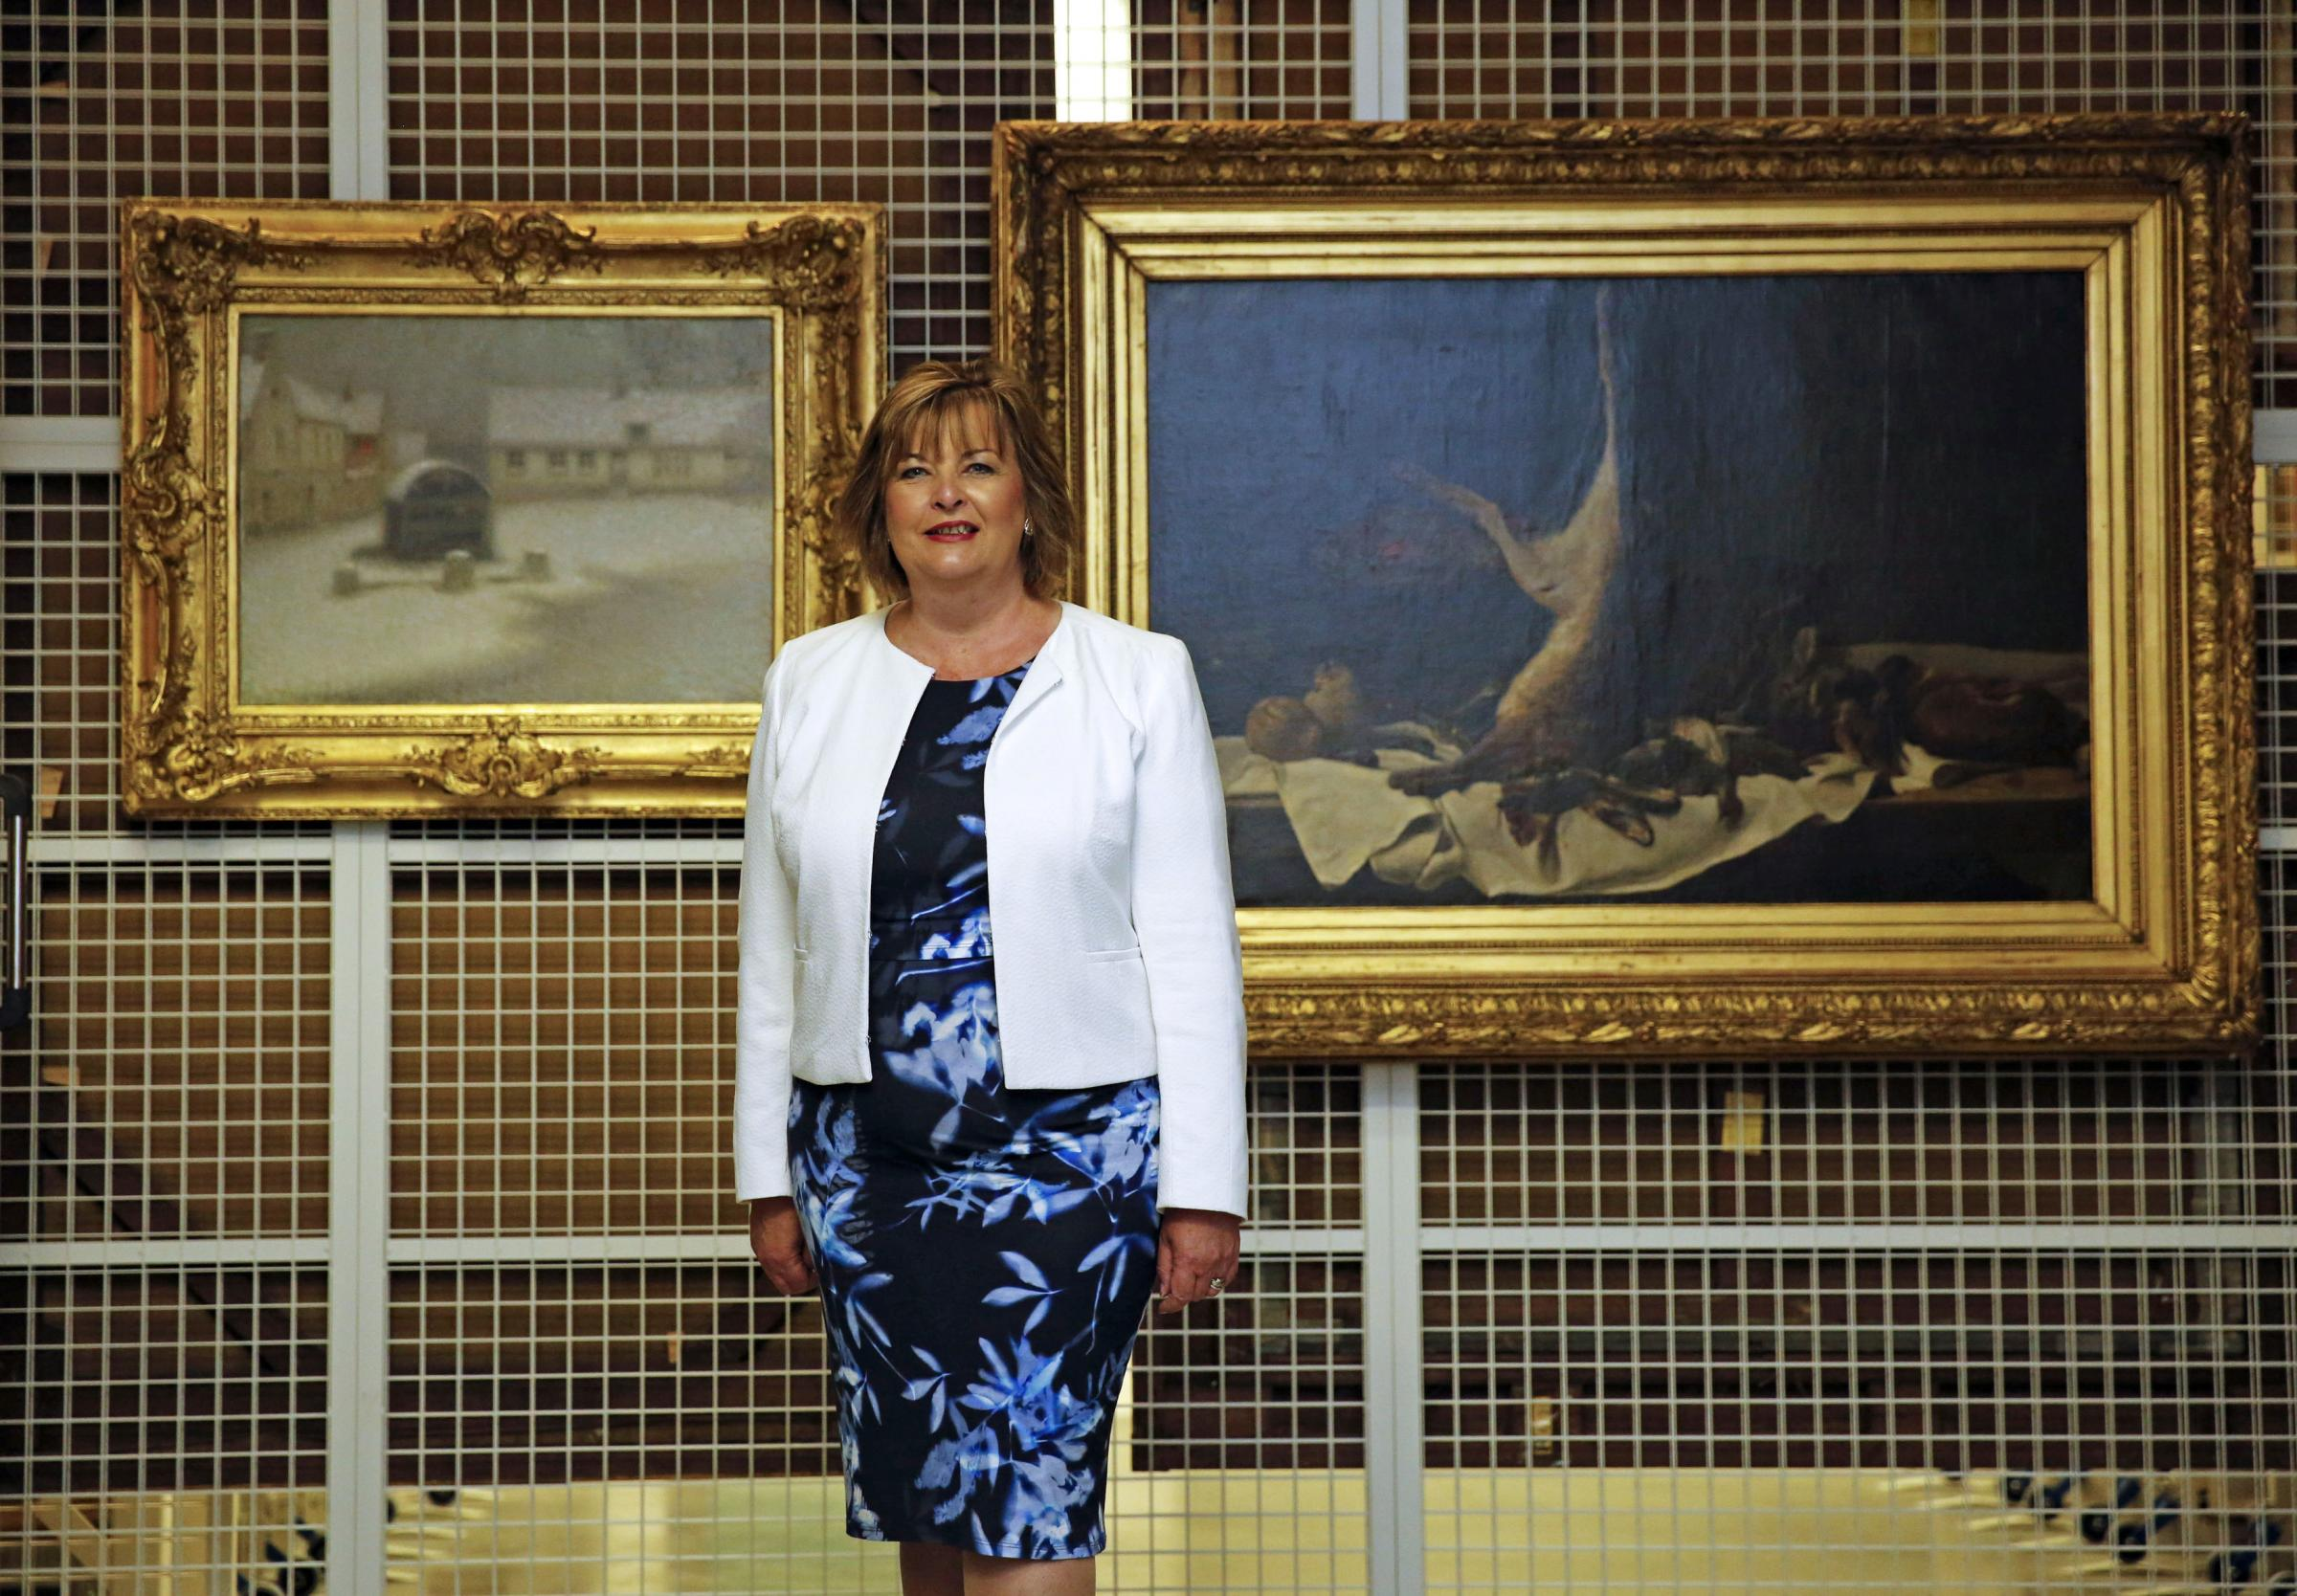 Fiona Hyslop said EU citizens in Scotland are 'welcome and valued'